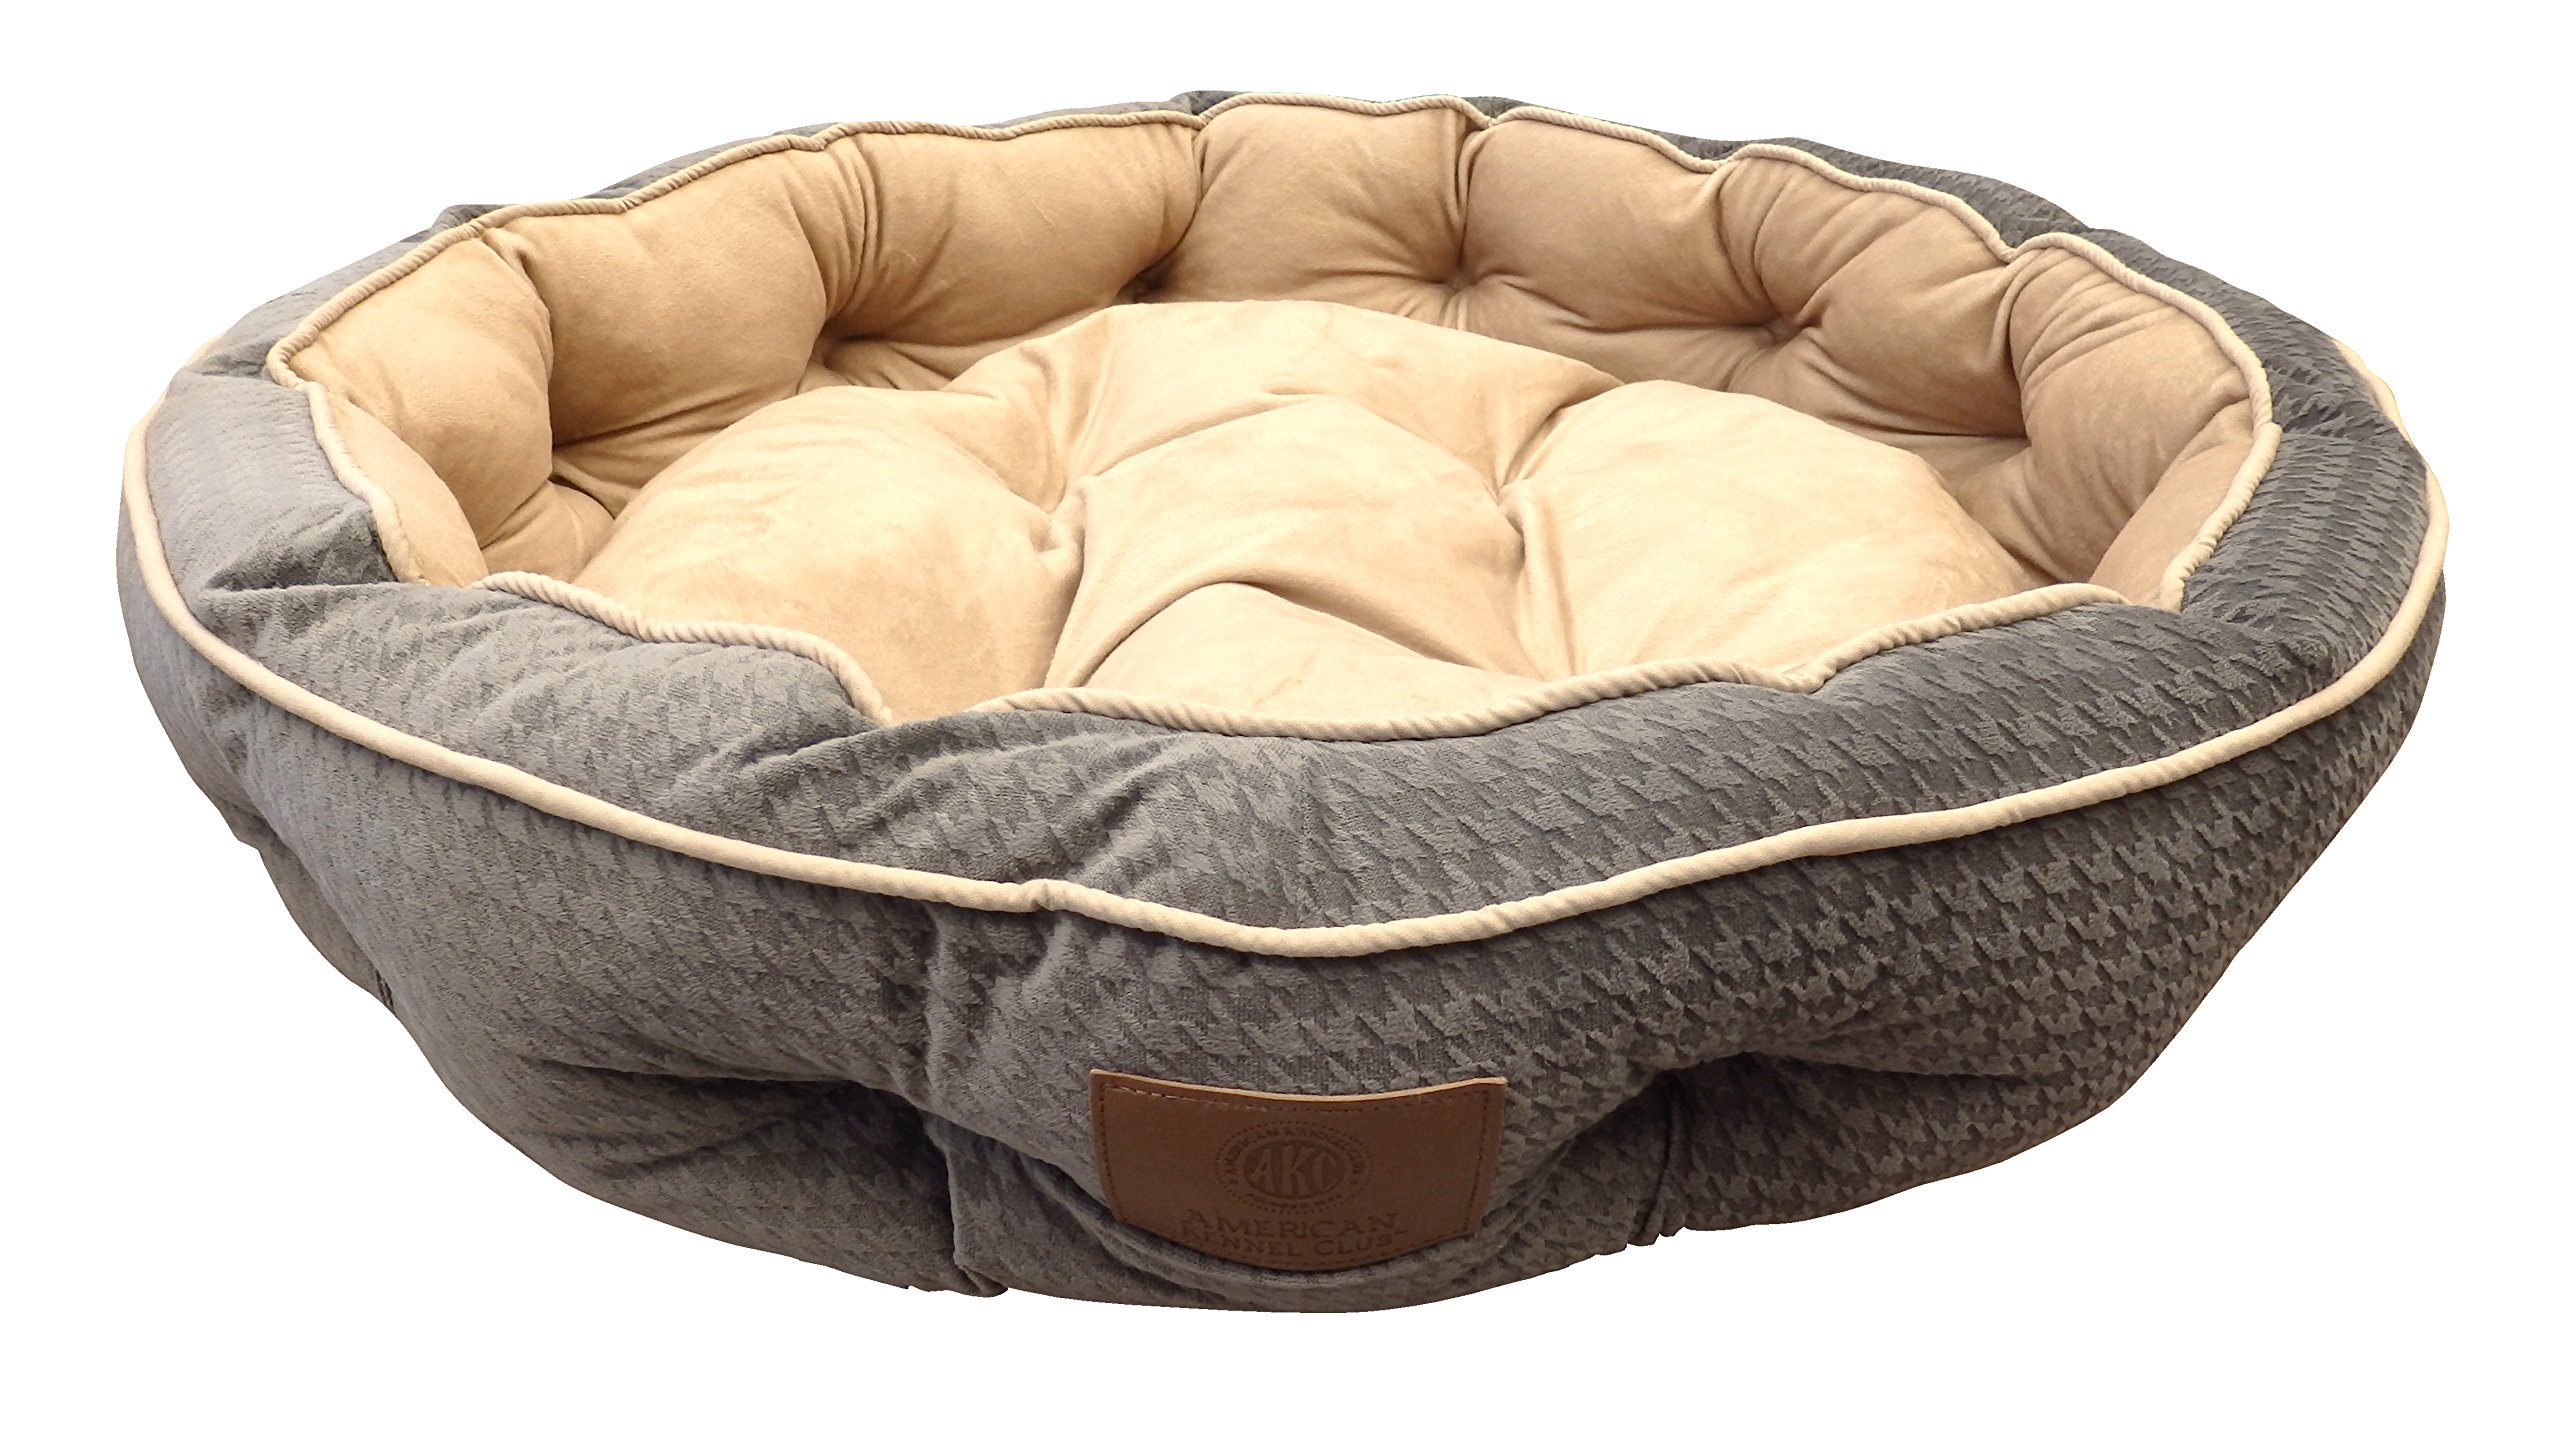 Stupendous Cheap Thermal Cat Bed Find Thermal Cat Bed Deals On Line At Creativecarmelina Interior Chair Design Creativecarmelinacom